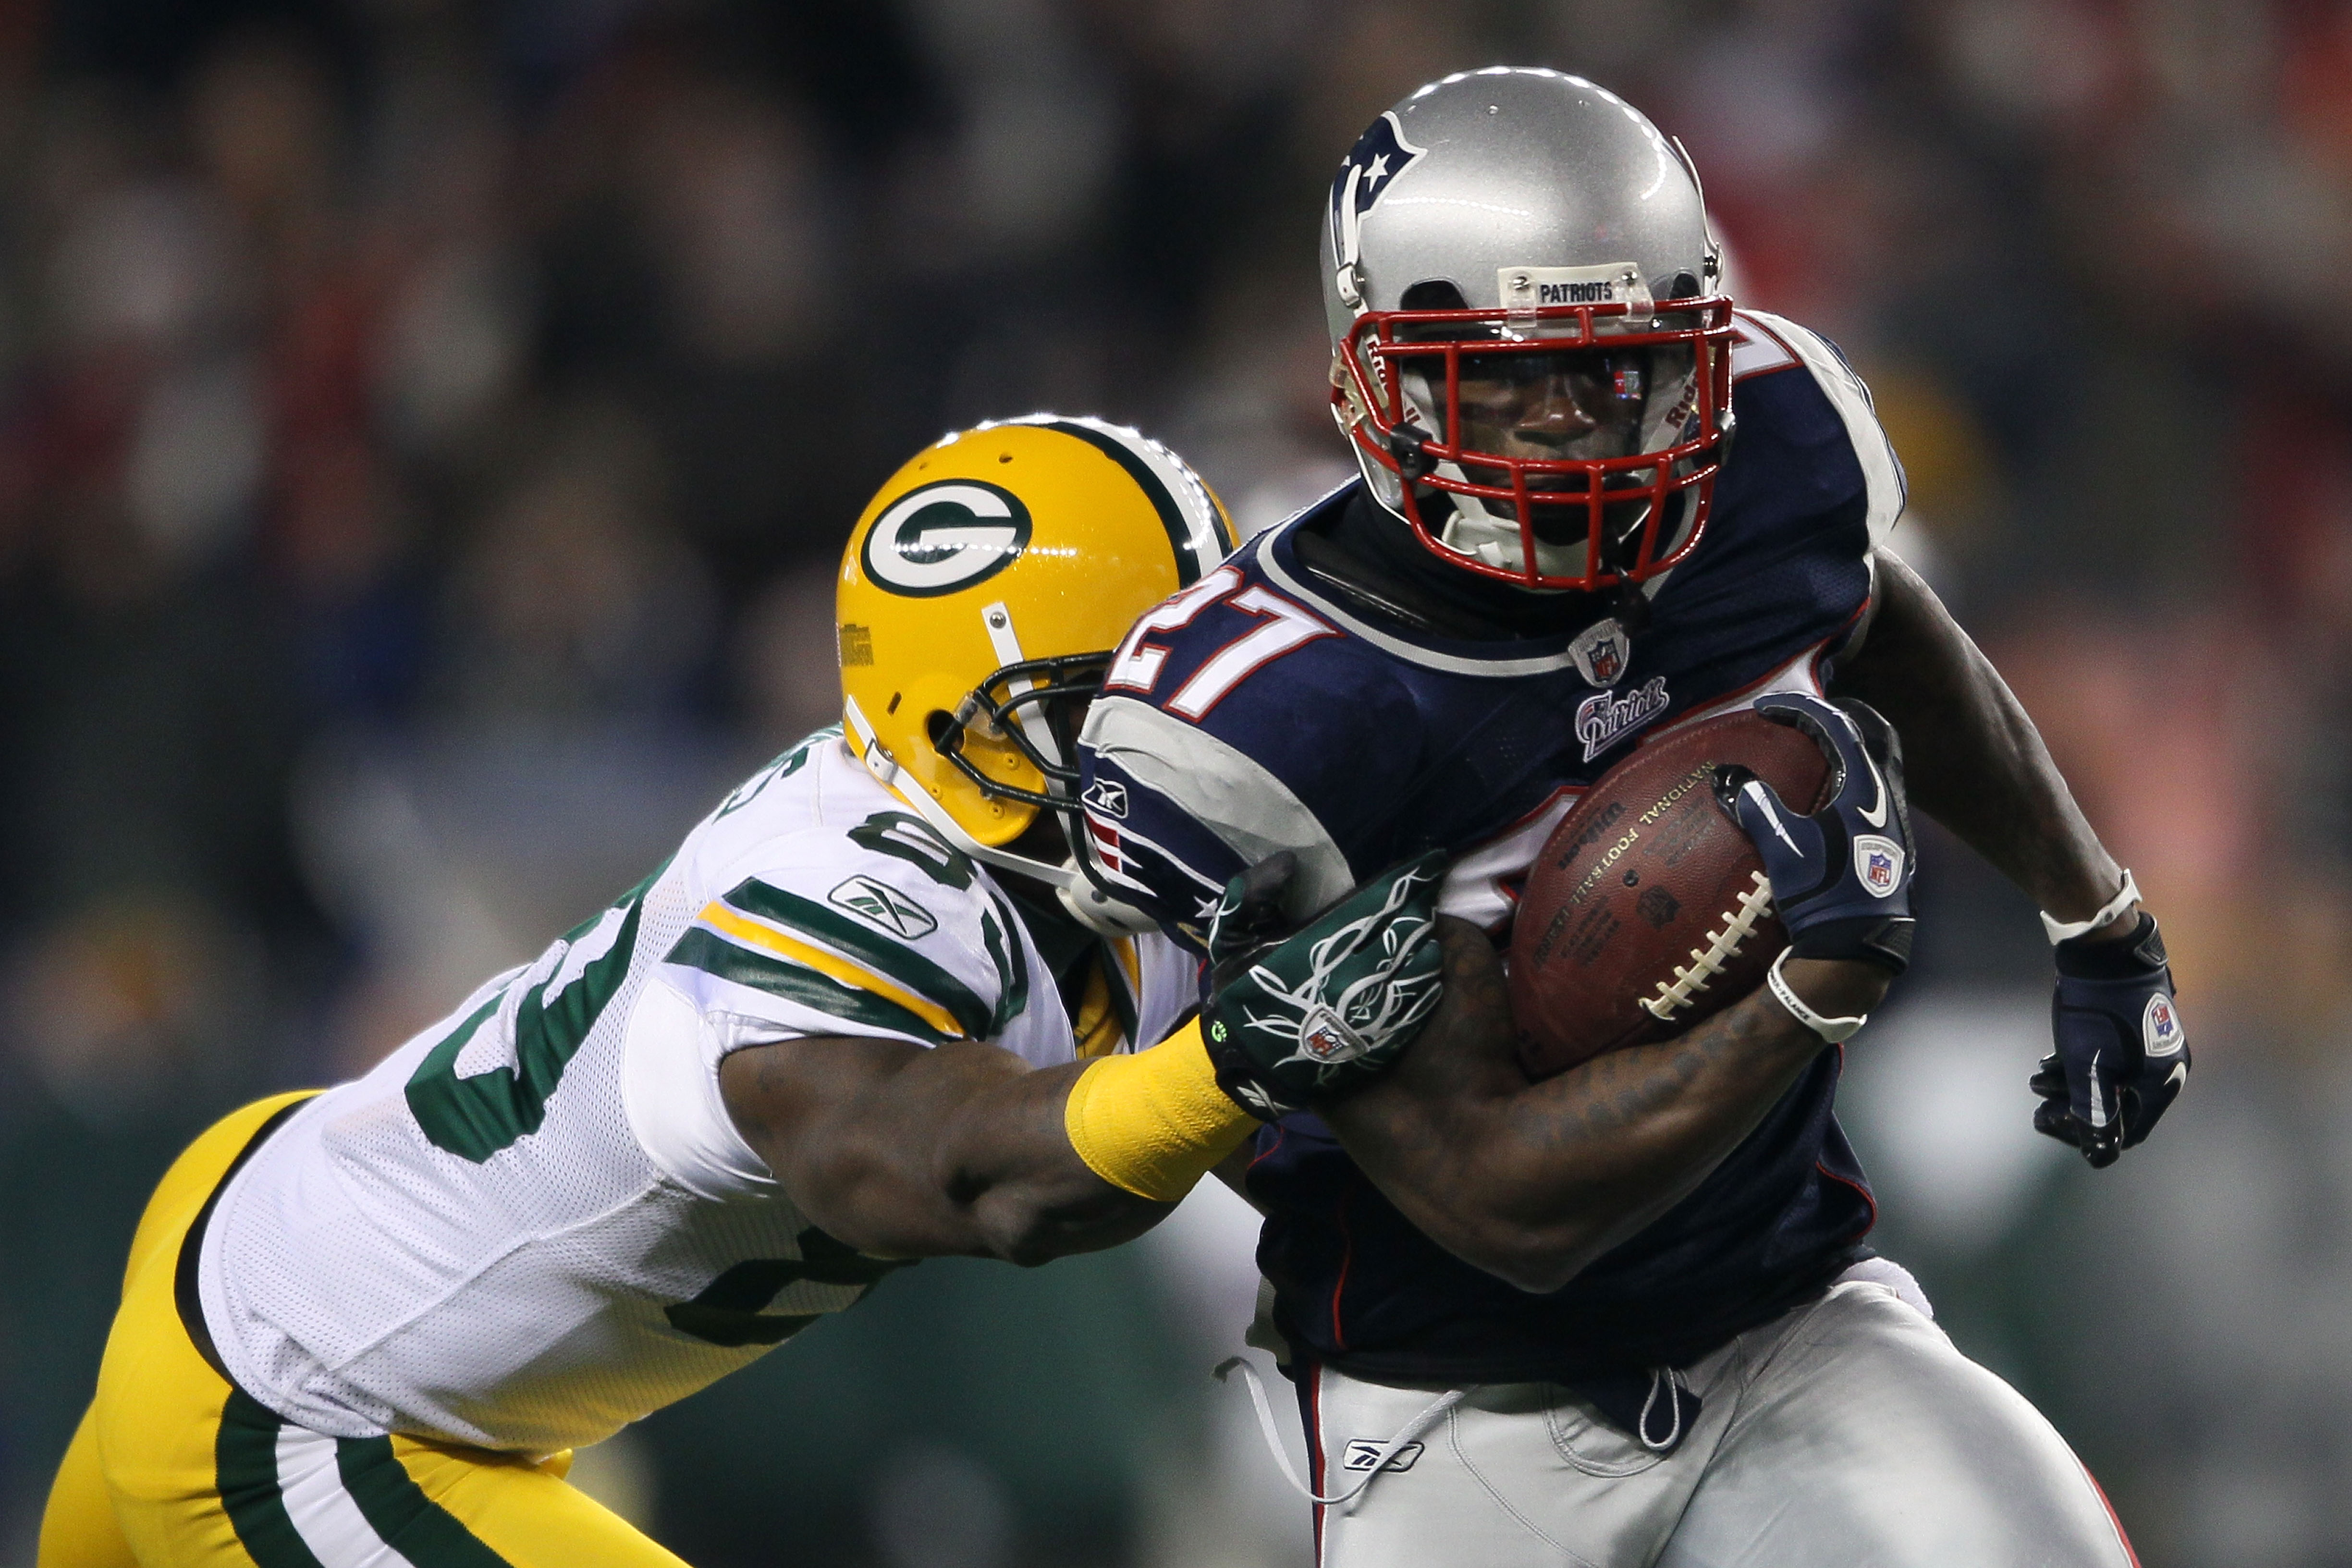 The New England Patriots are poised for another run at the Lombardi Trophy